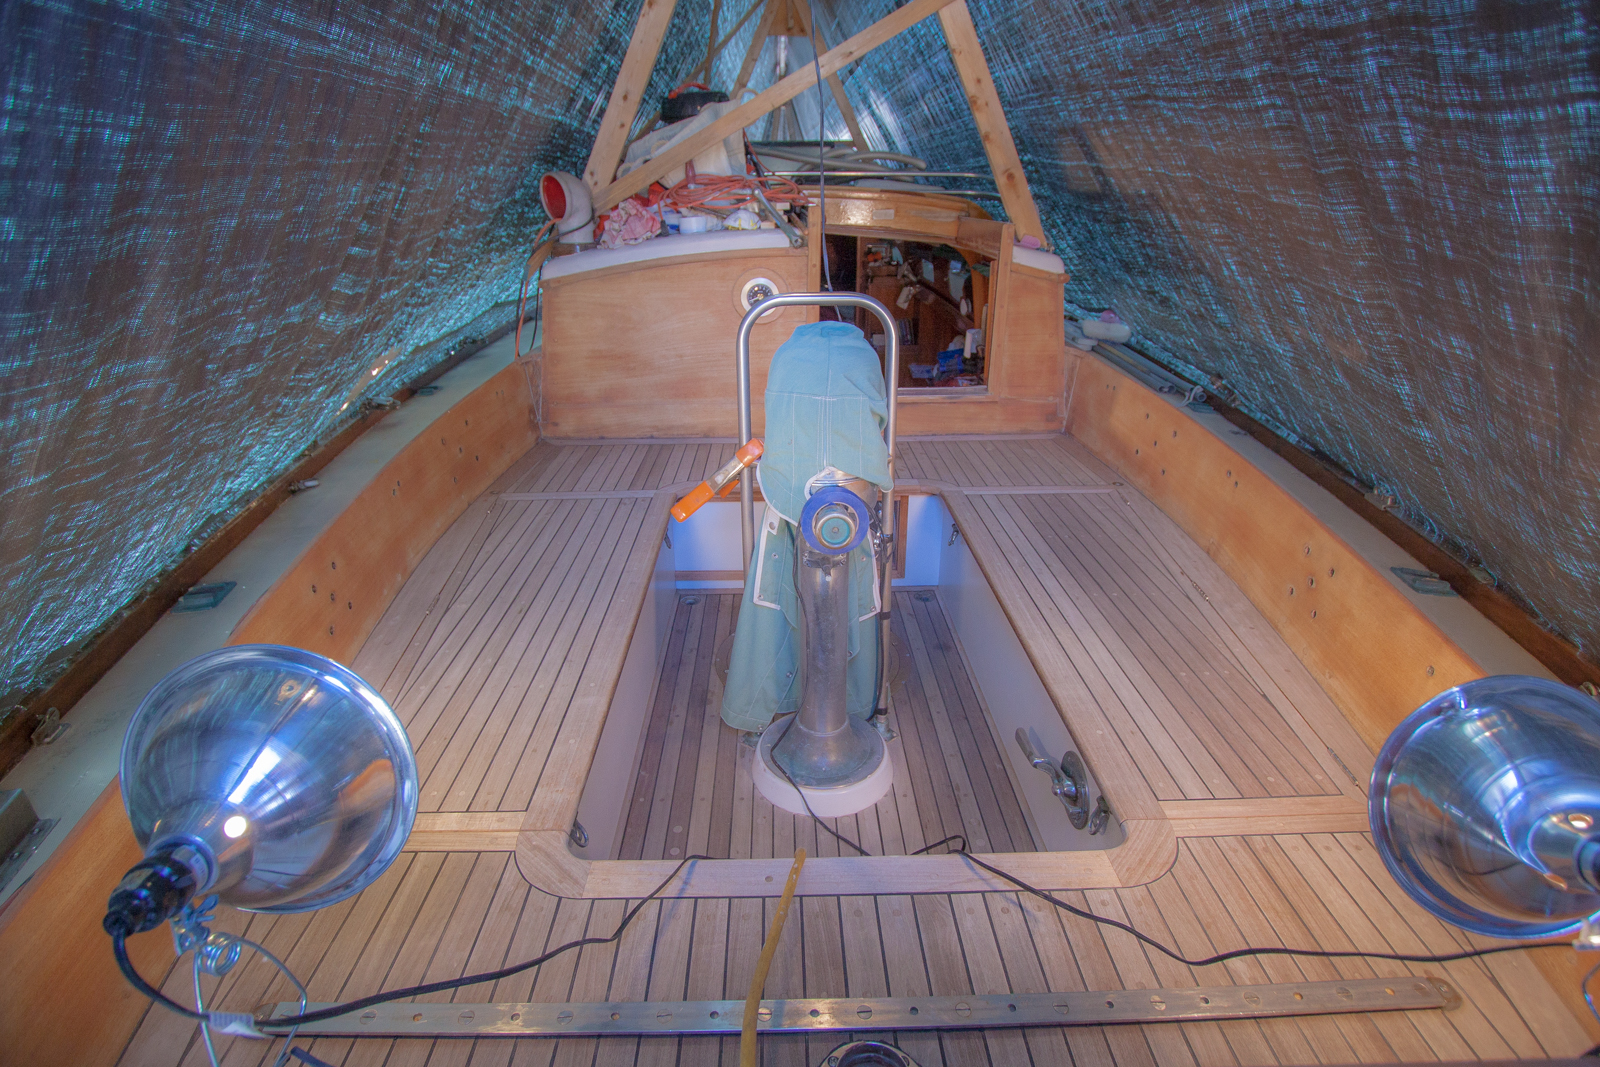 Boat work under cover 2 (1 of 1).jpg